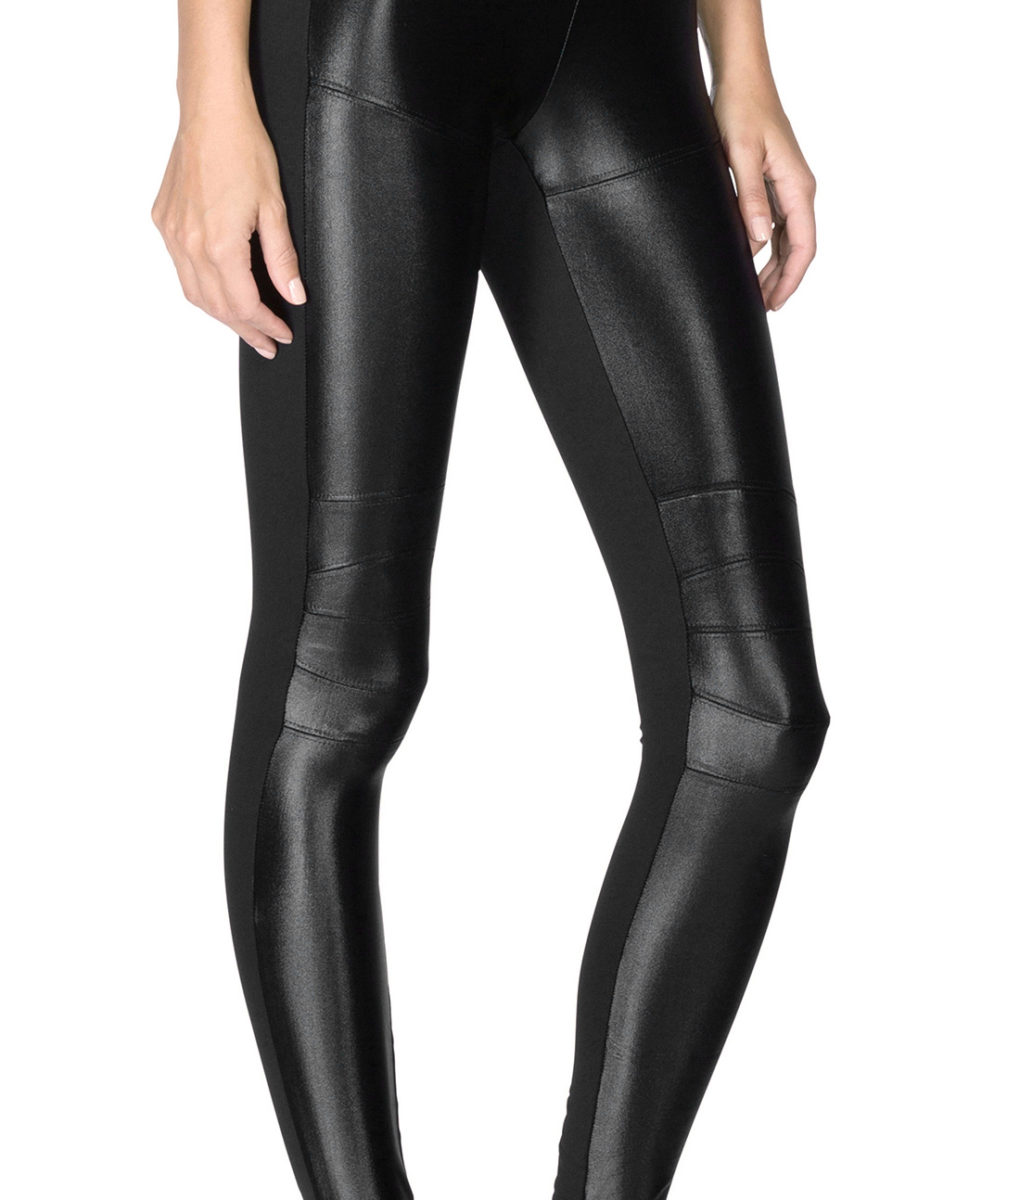 MOTO-LEGGING-INFINITY_BLK_side_cropped-copy